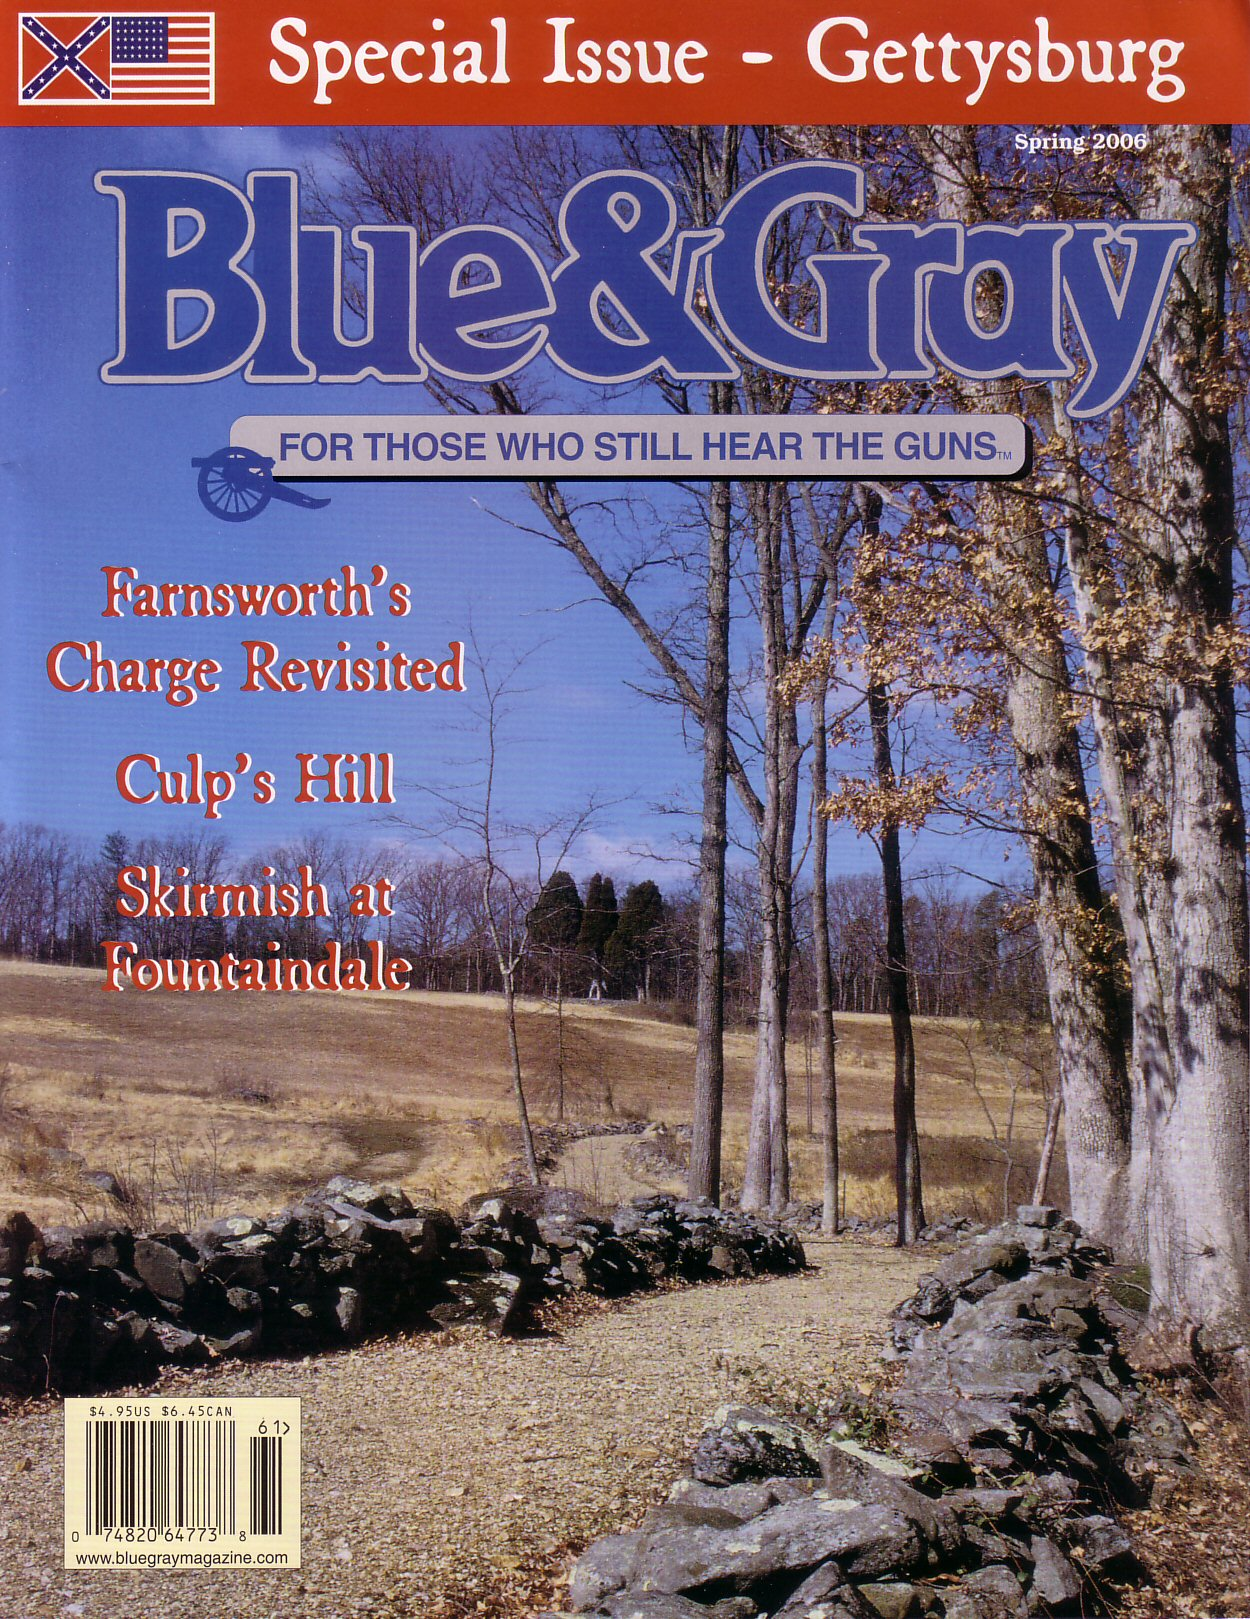 Blue & Gray Magazine, Volume 23, Number 1 (Spring 2006)